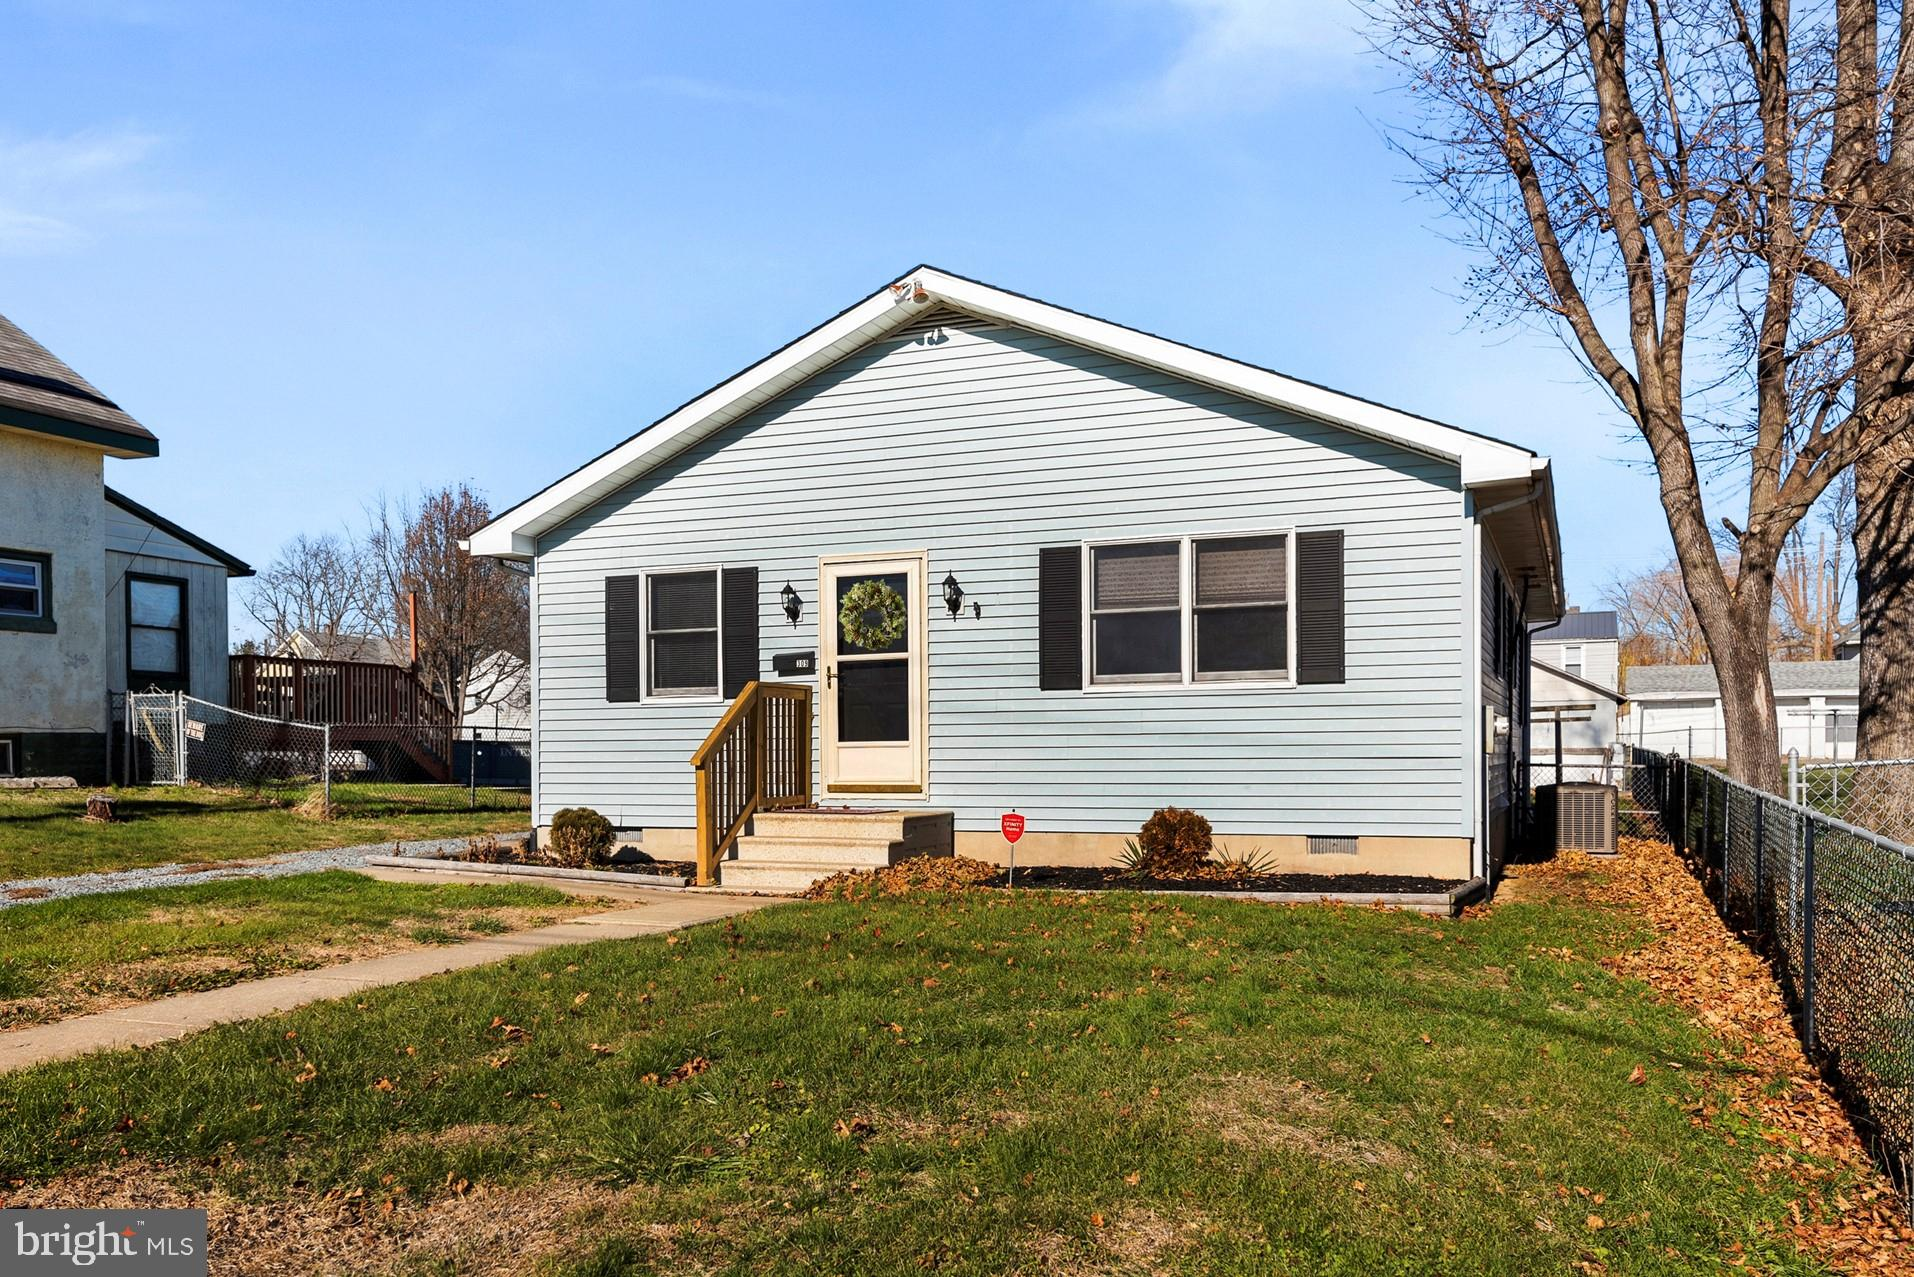 A delightful 3 bedroom, 2 full bath ranch with 2 car garage located on a quiet street in the town of